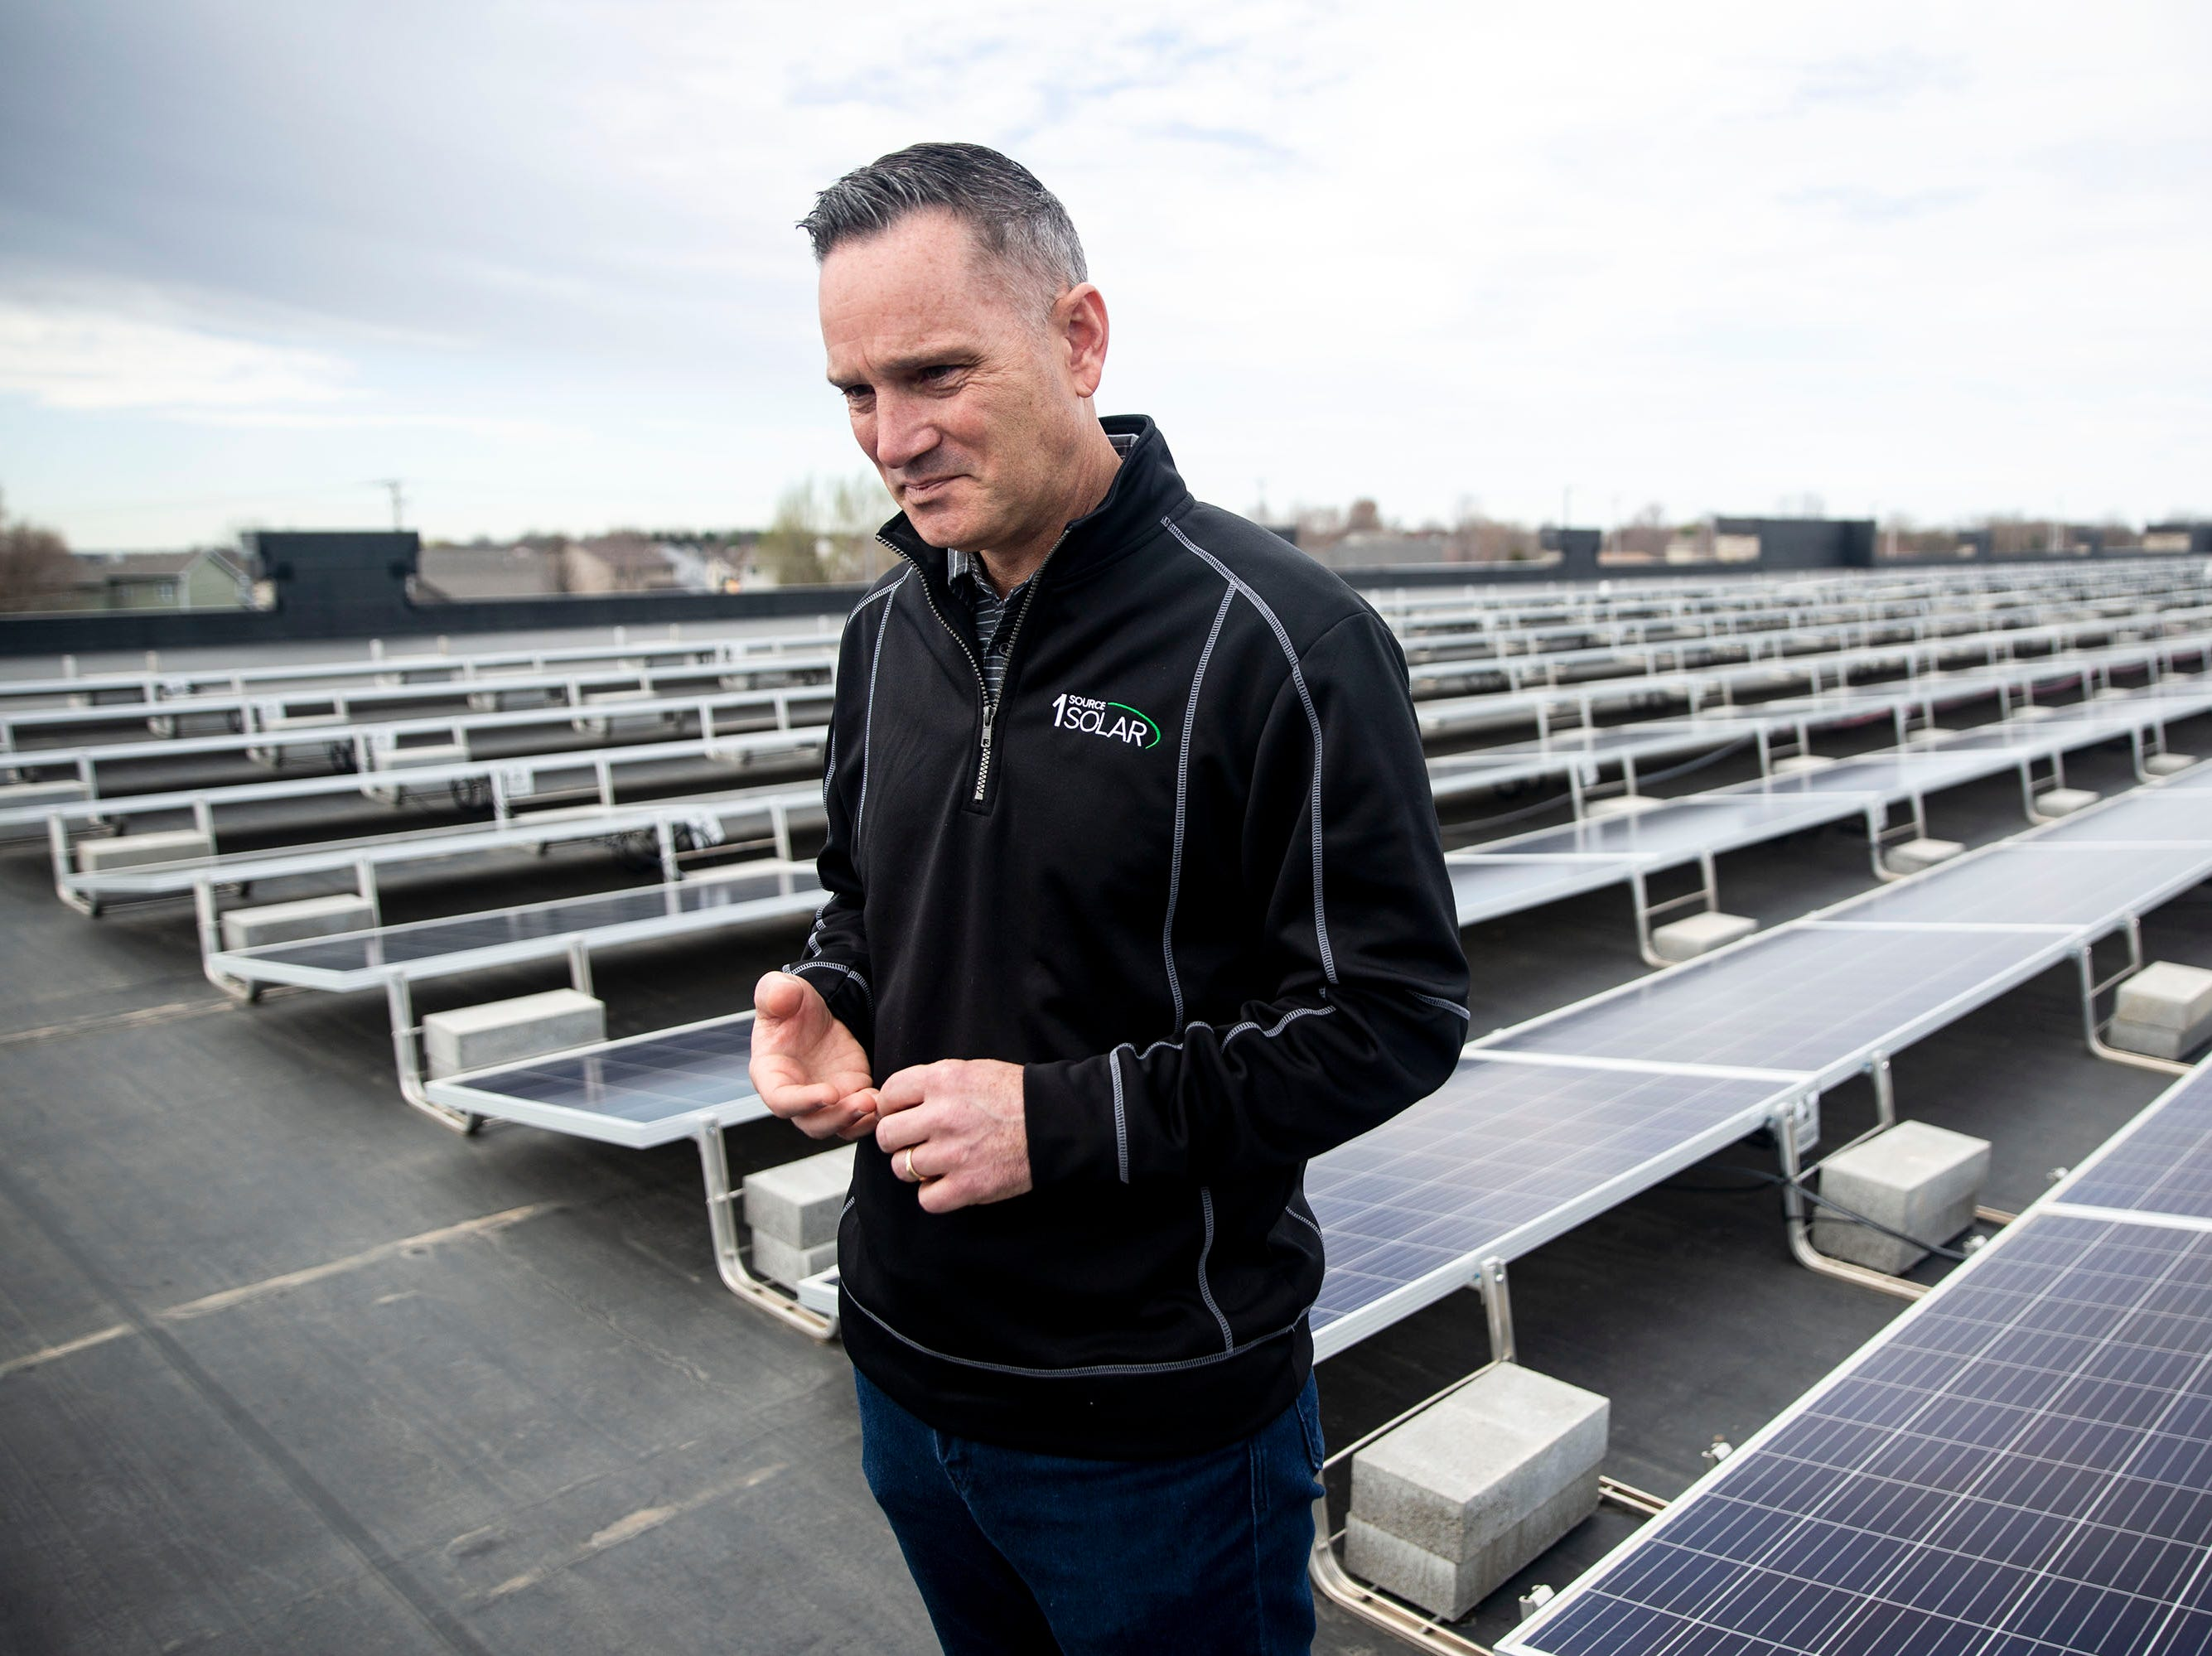 Todd Miller, president of 1 Source Solar, stands near the solar panels that line the roof of 1 Source's building on Tuesday, April 9, 2019, in Ankeny.